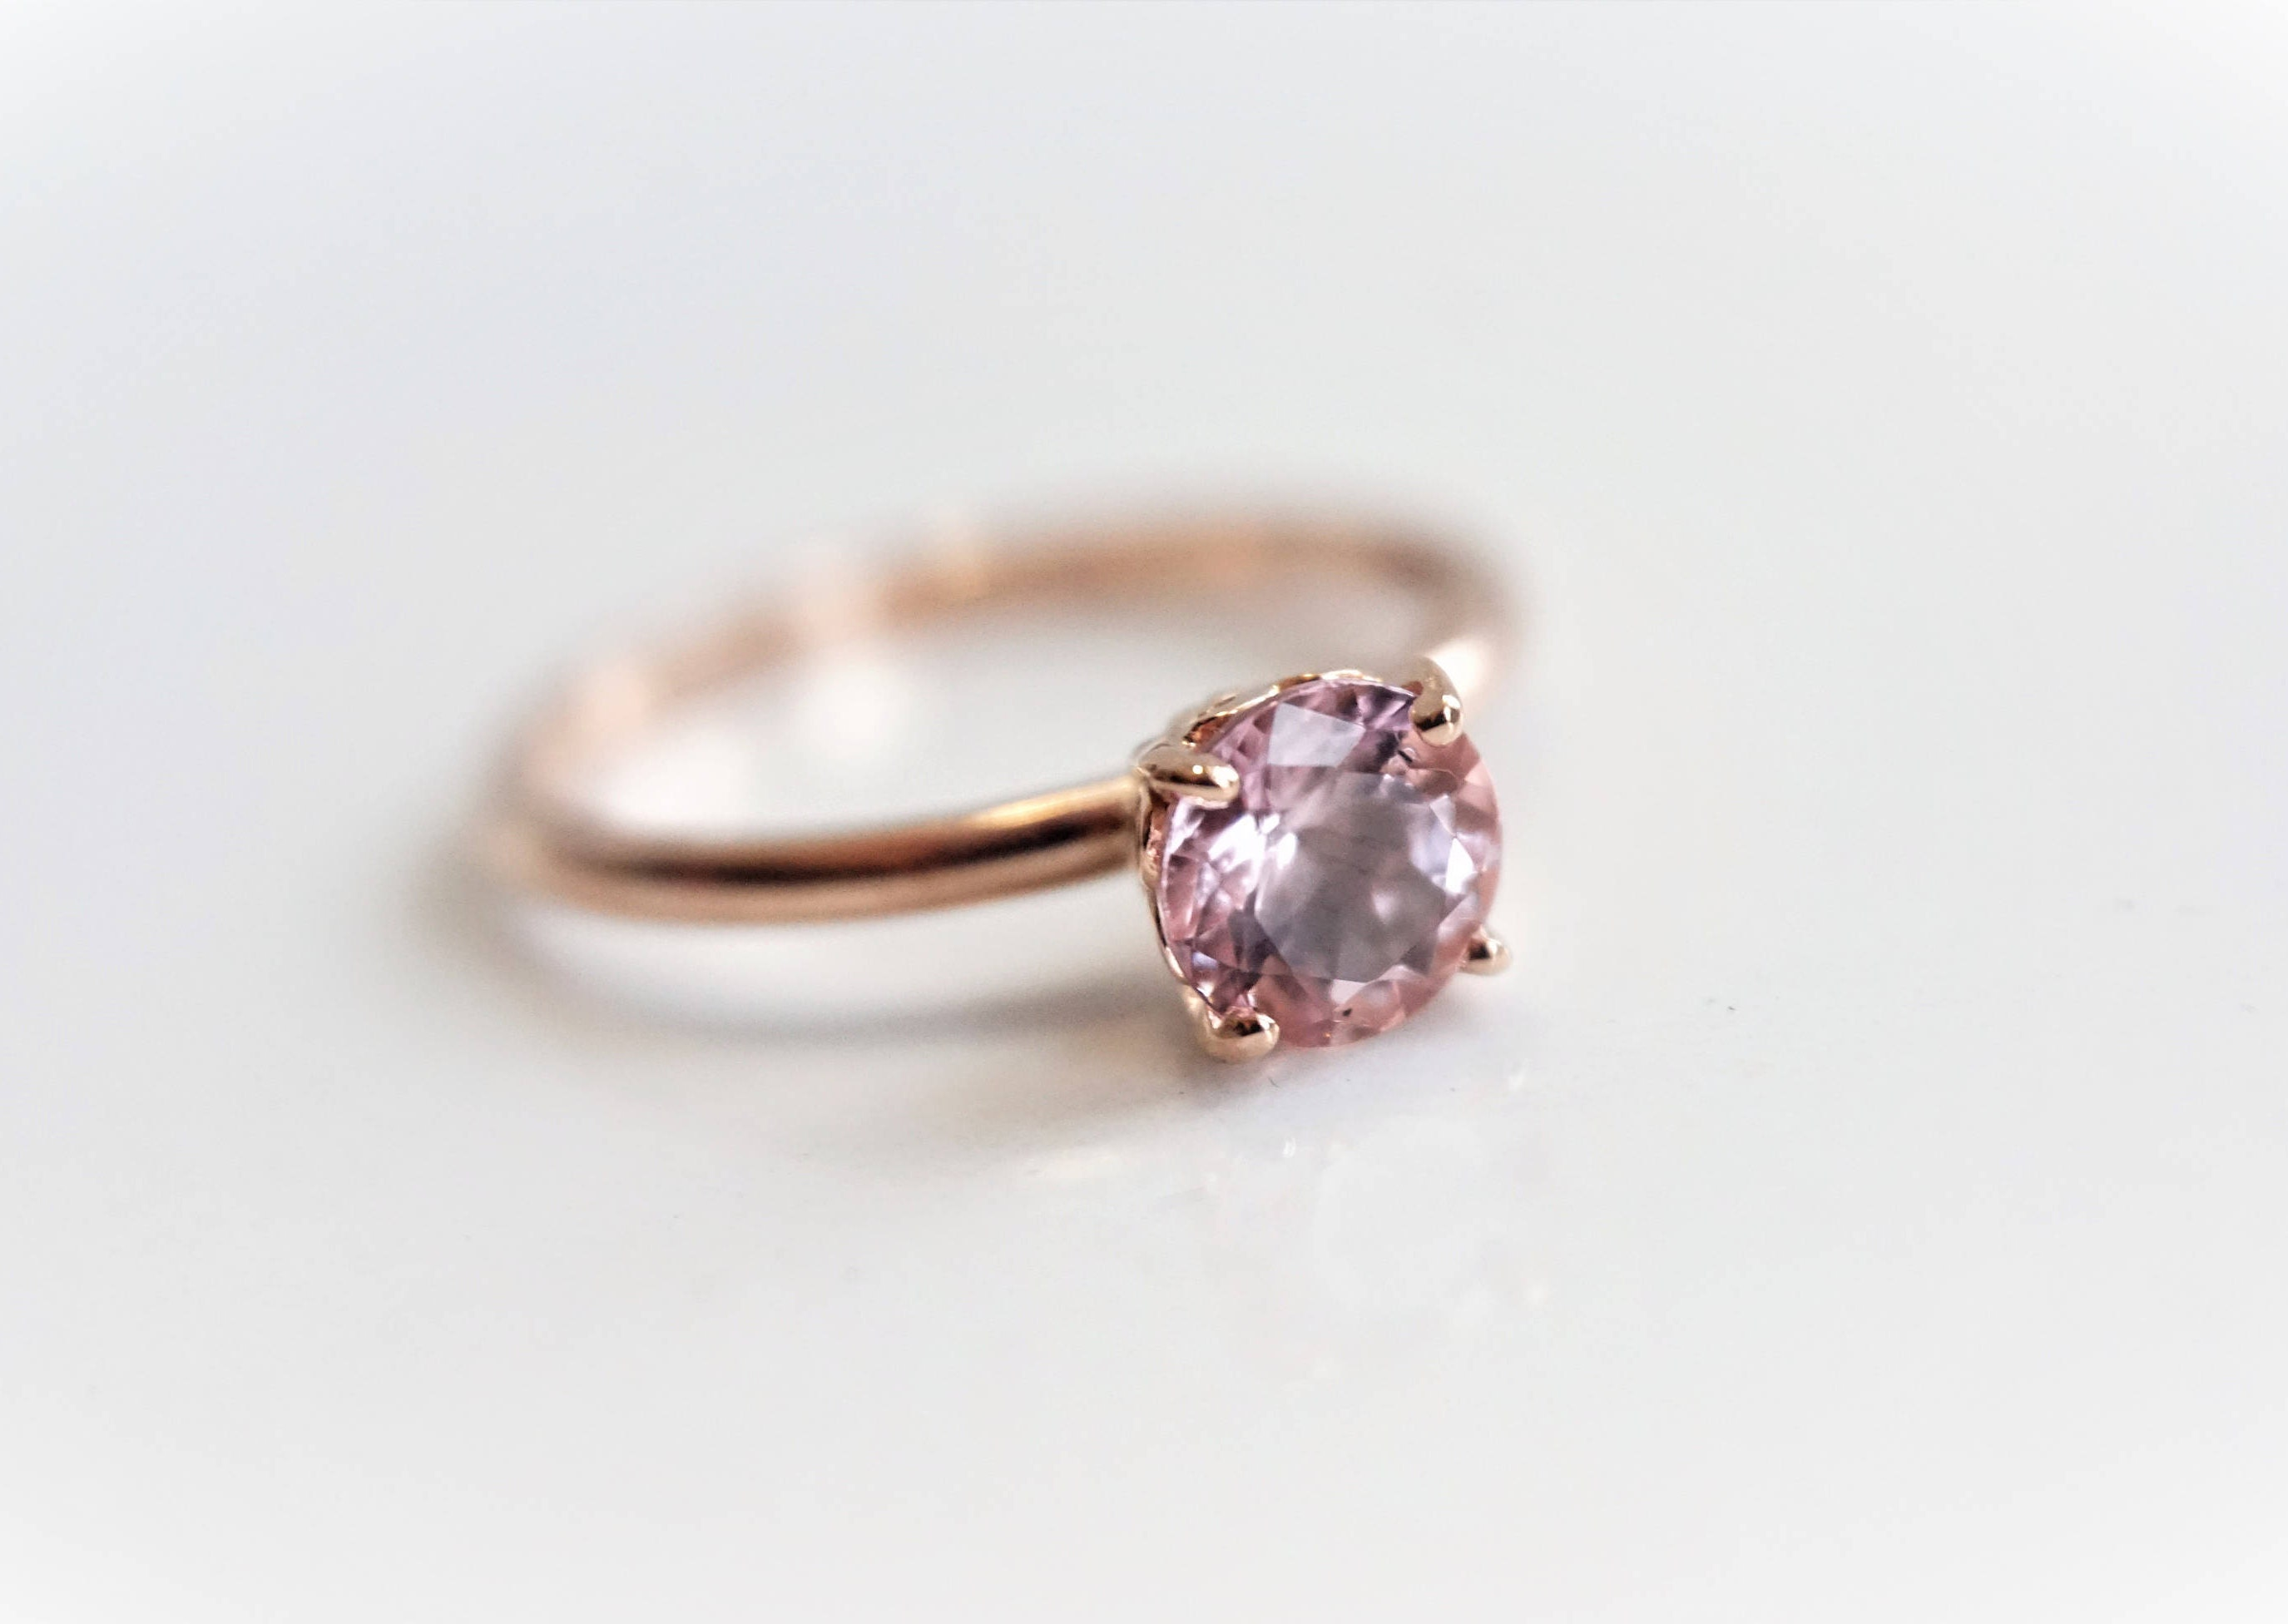 Solitaire 6 mm Baby Pink Morganite Ring 14K Rose Gold Morganite